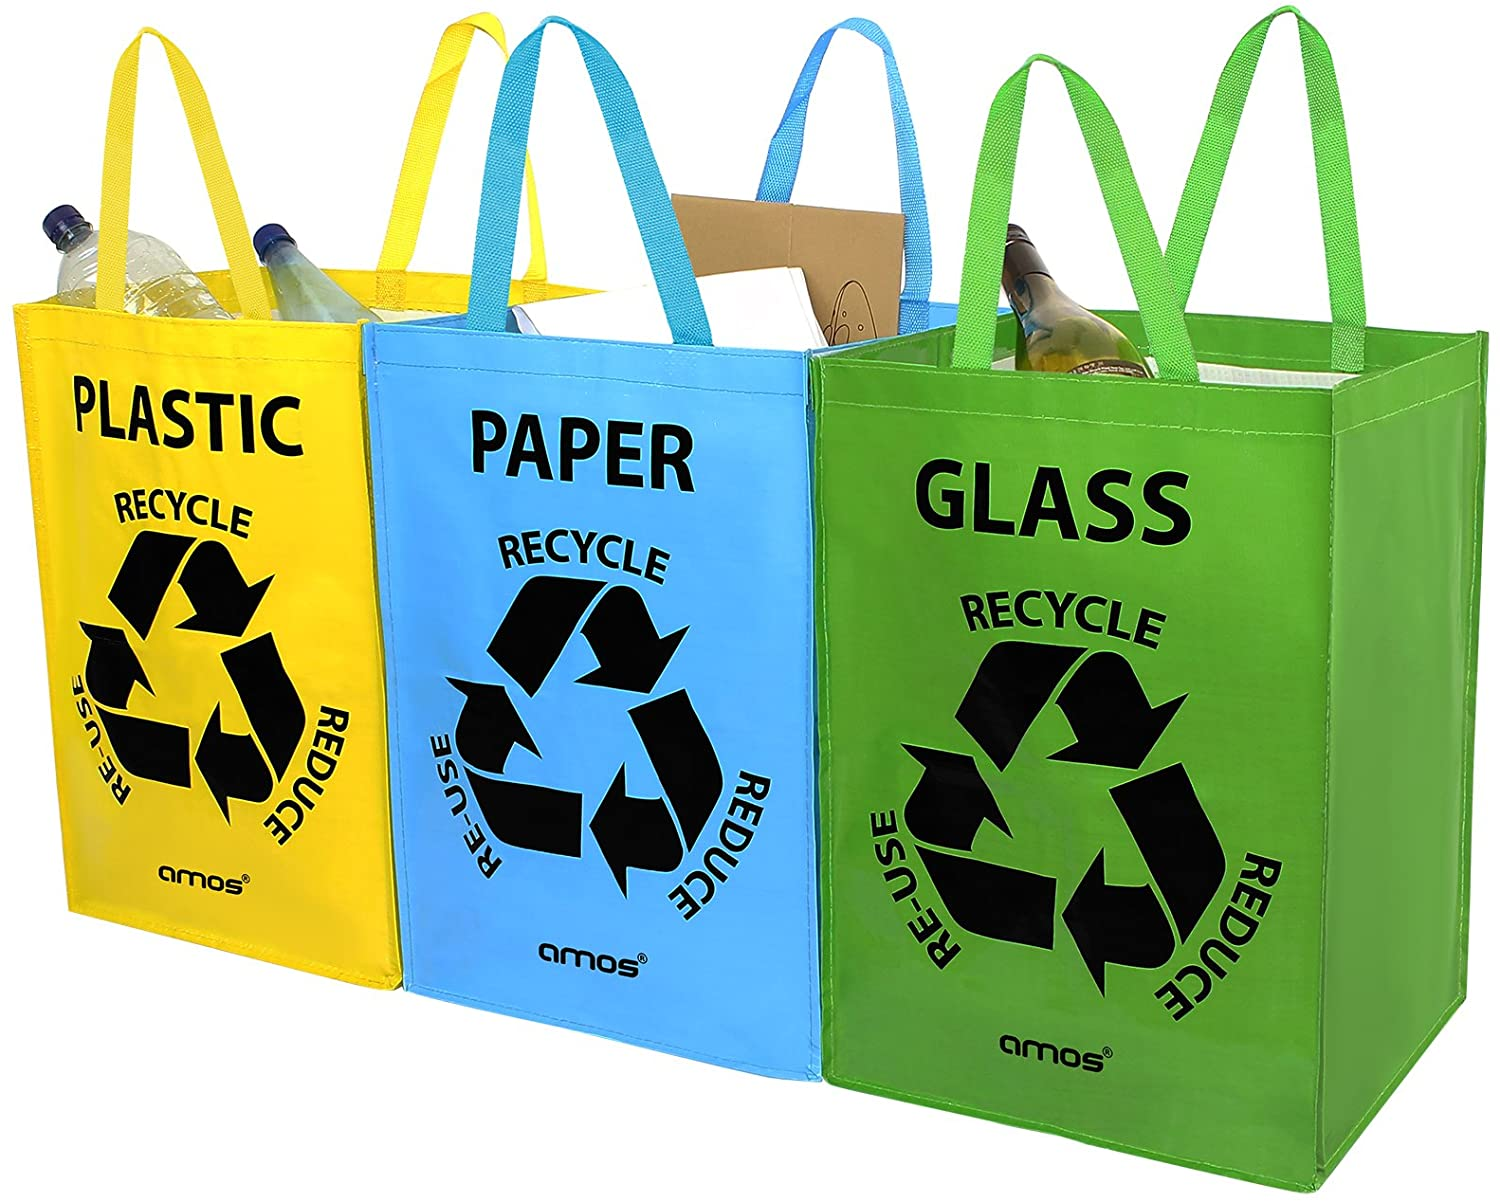 recyclable bags private label product